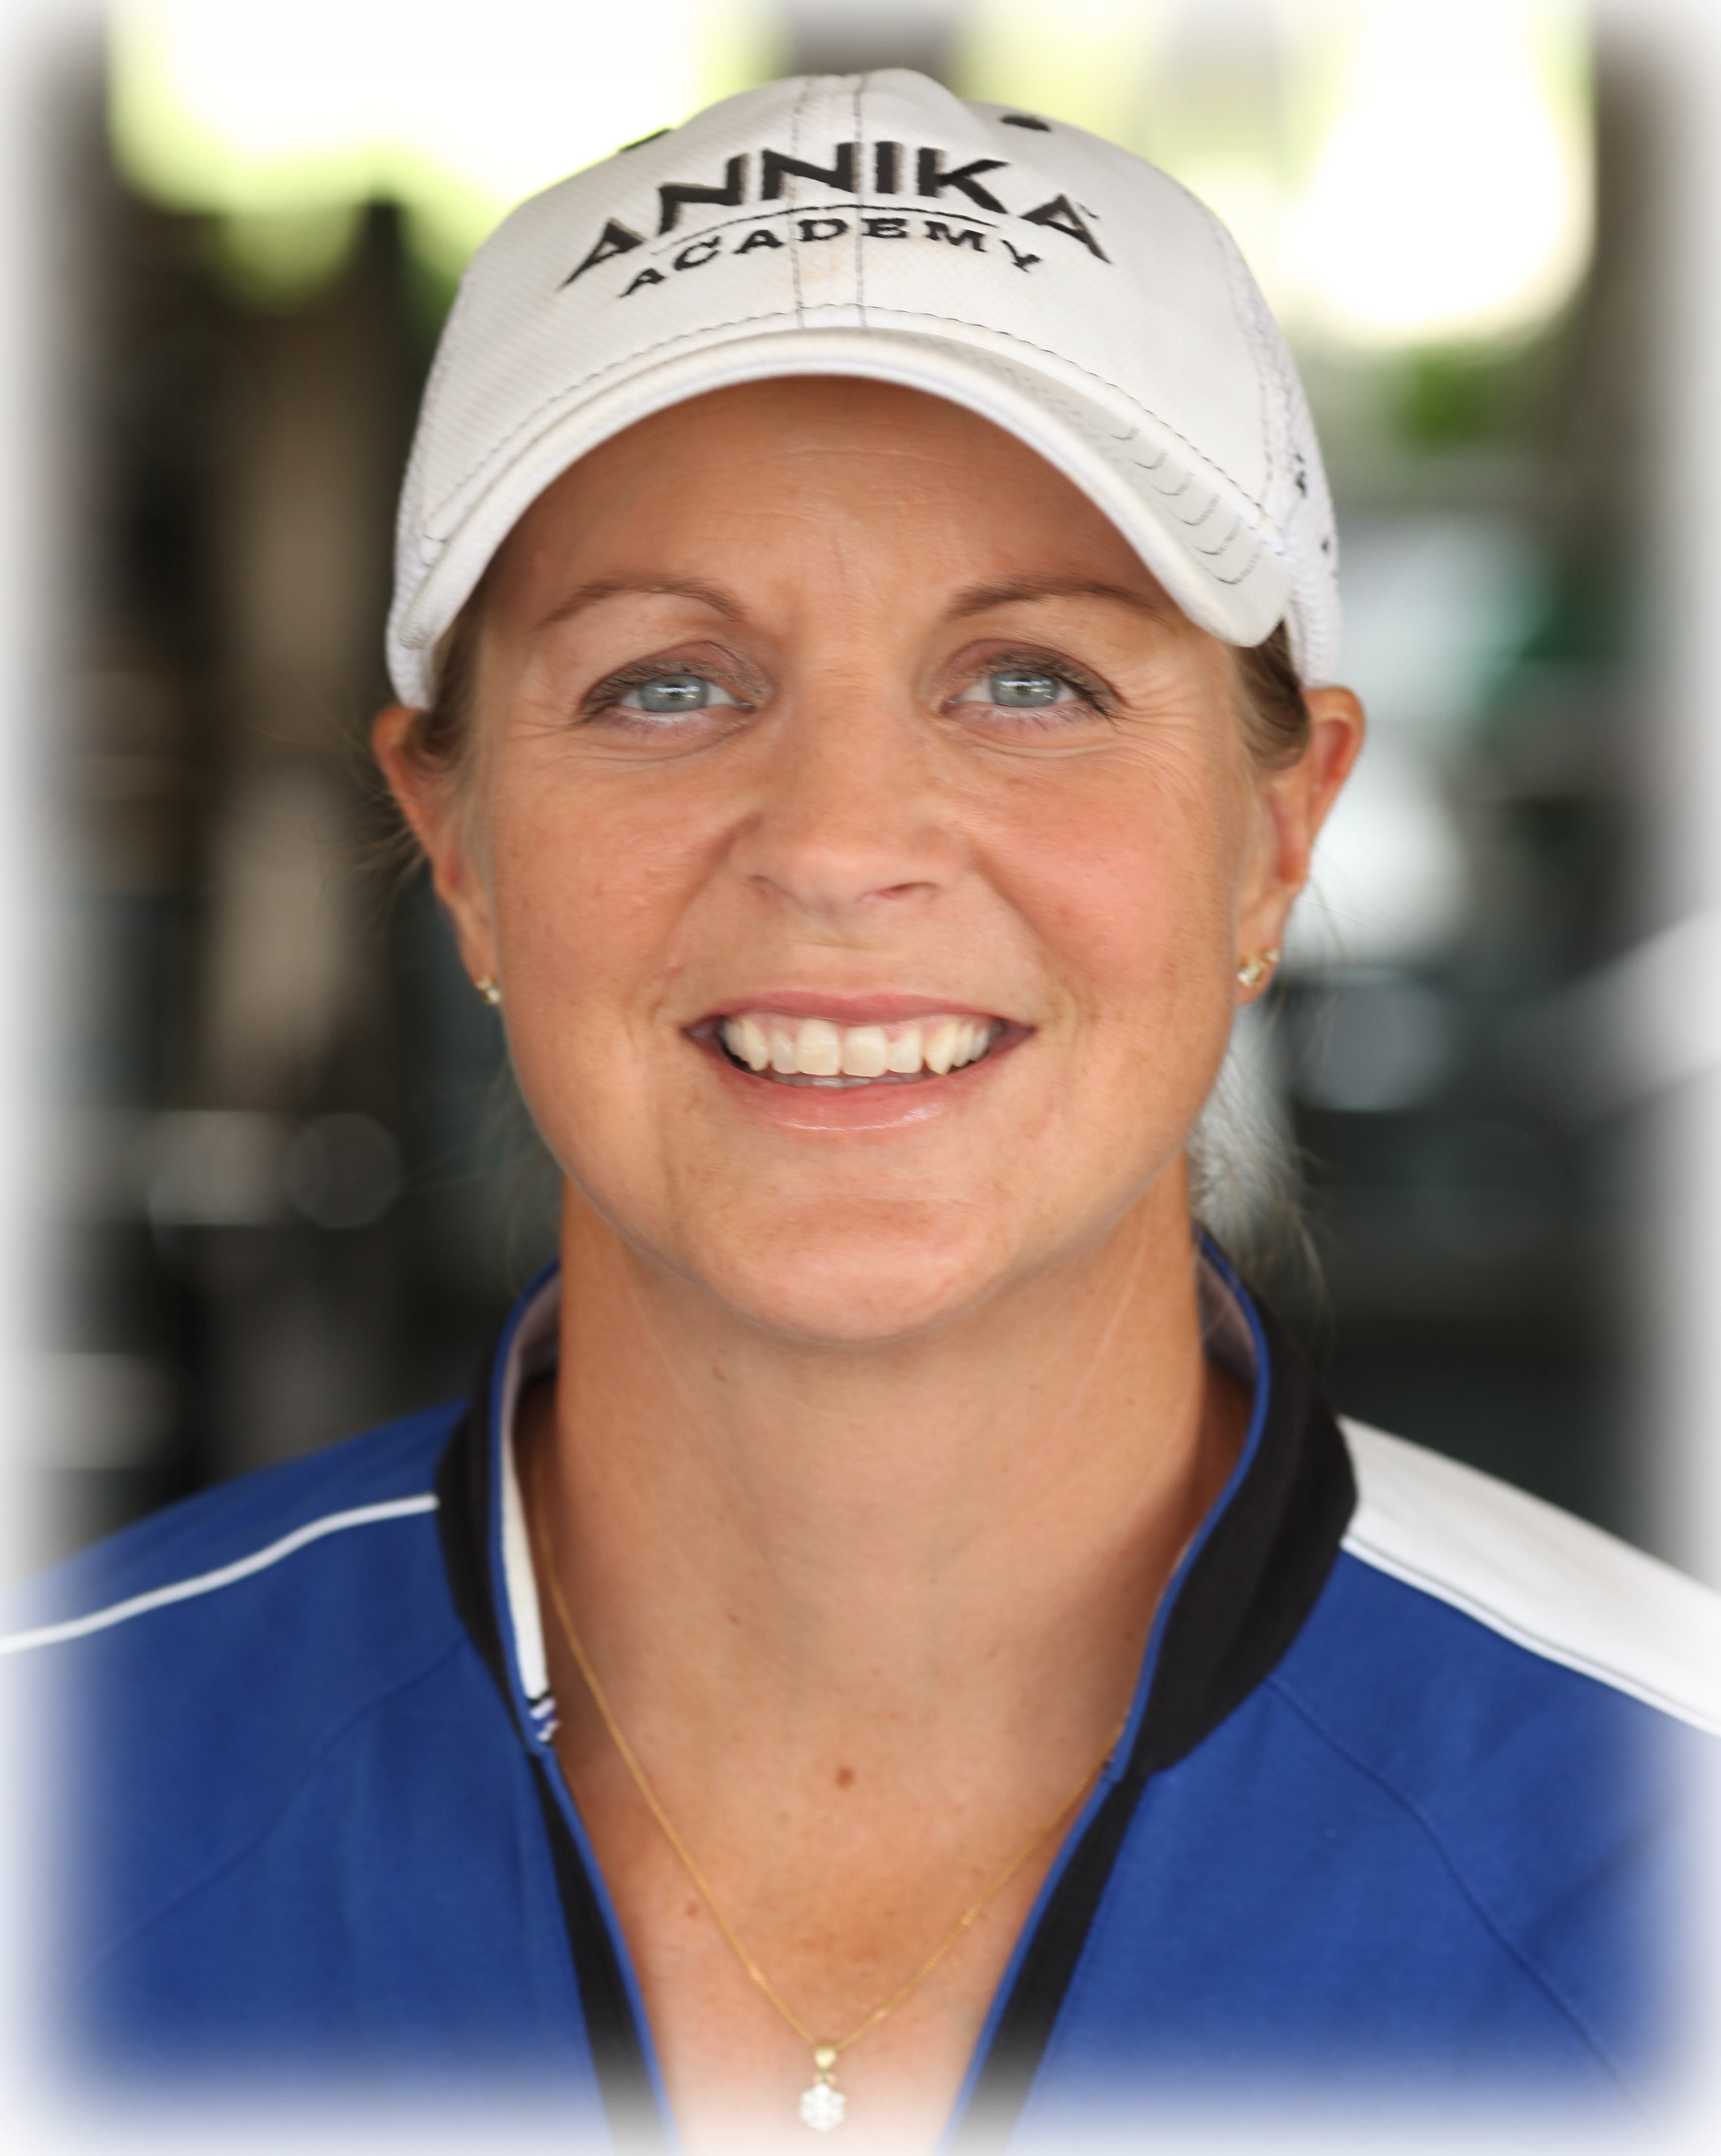 Former Solheim Cup player for the European Team, Charlotta Sorenstam